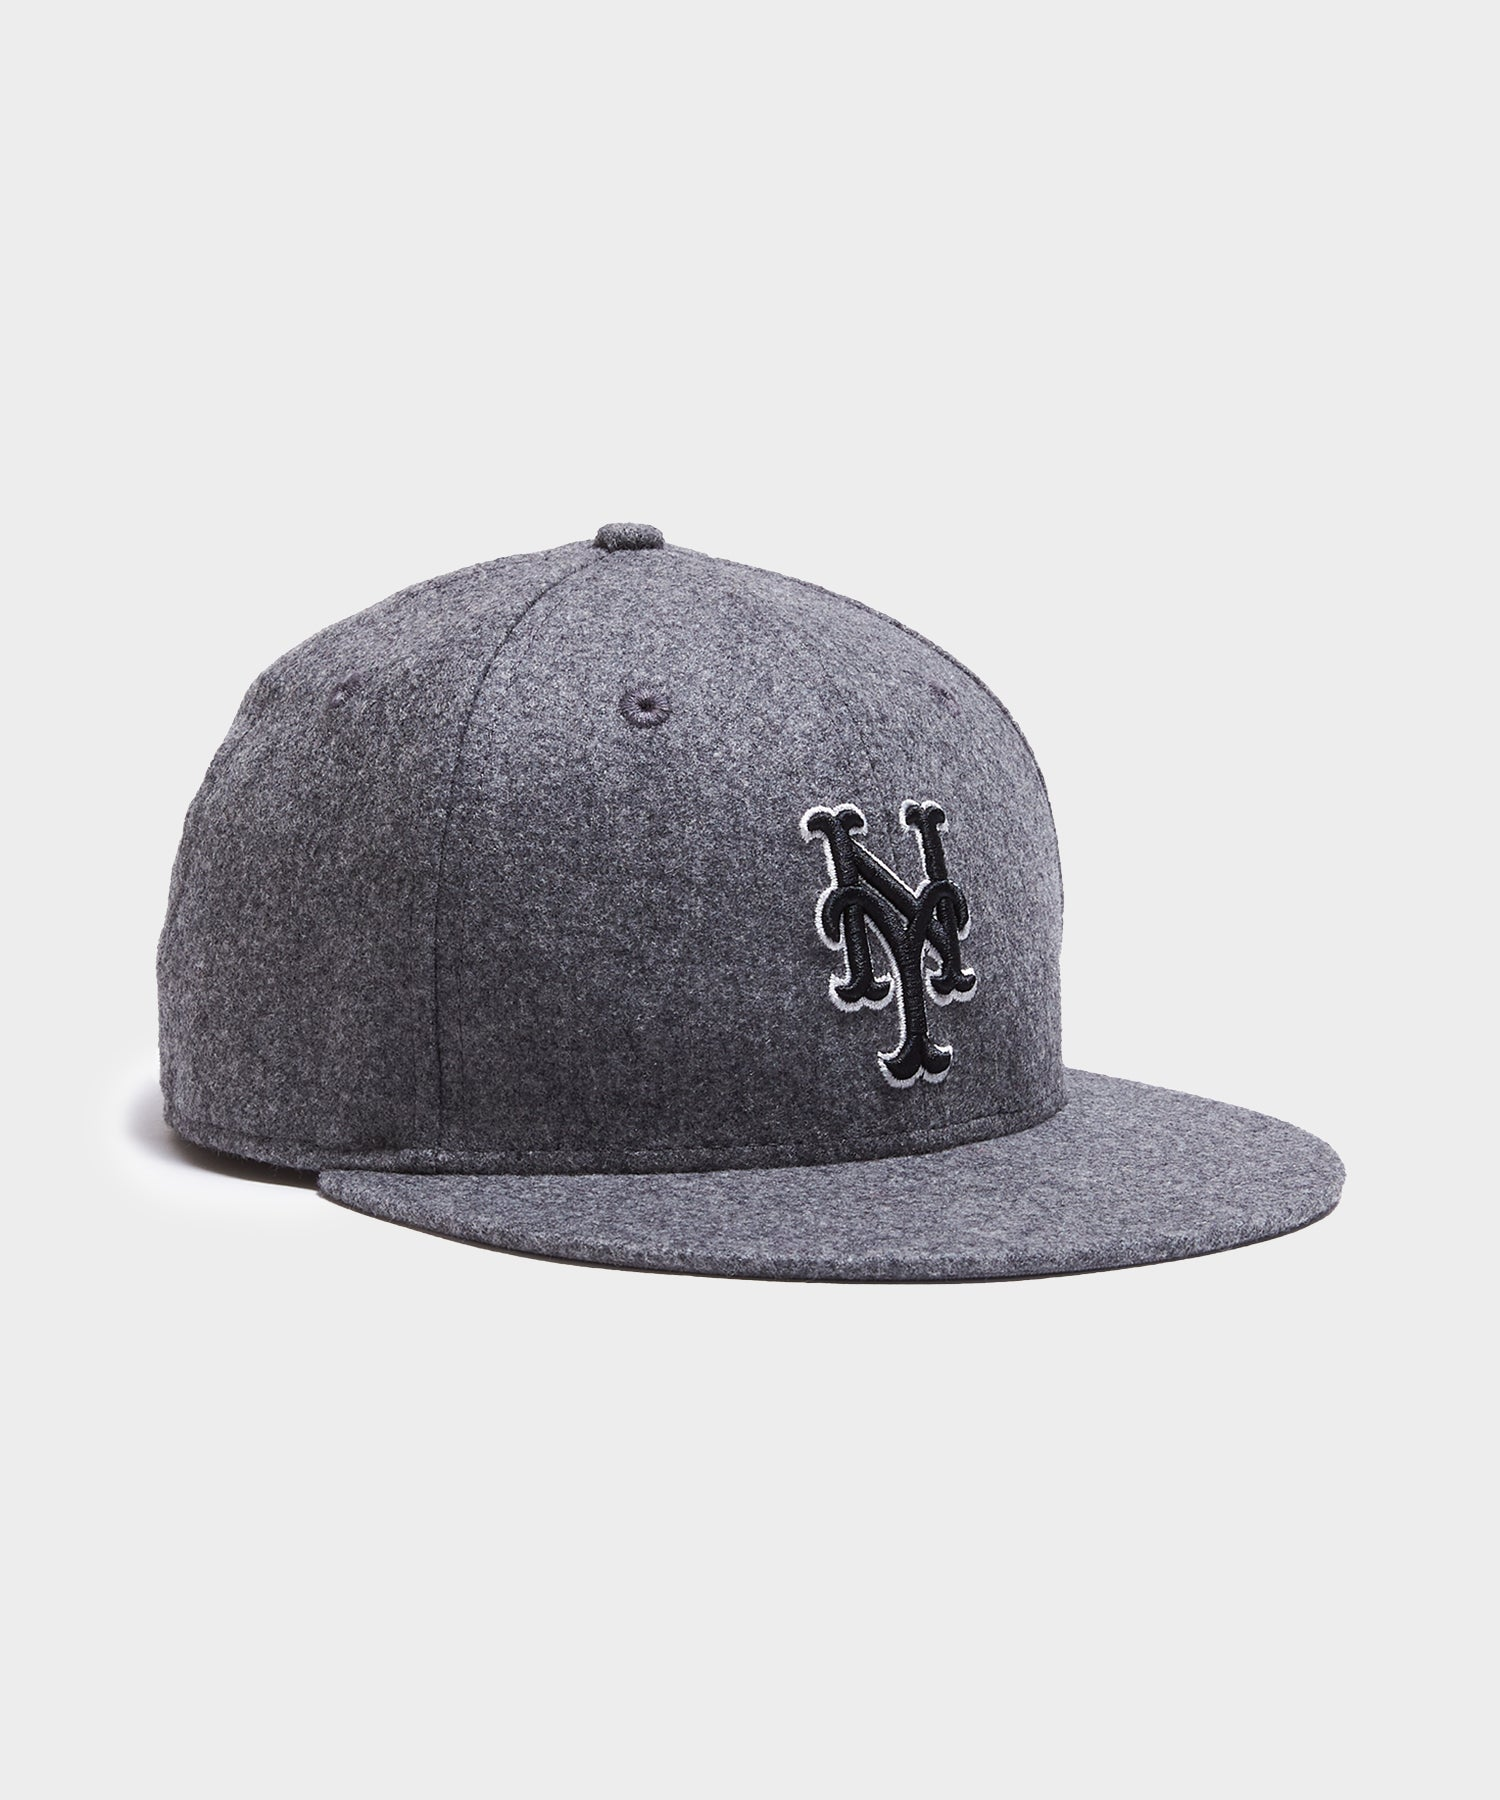 Todd Snyder + New Era New York Pack NY Mets